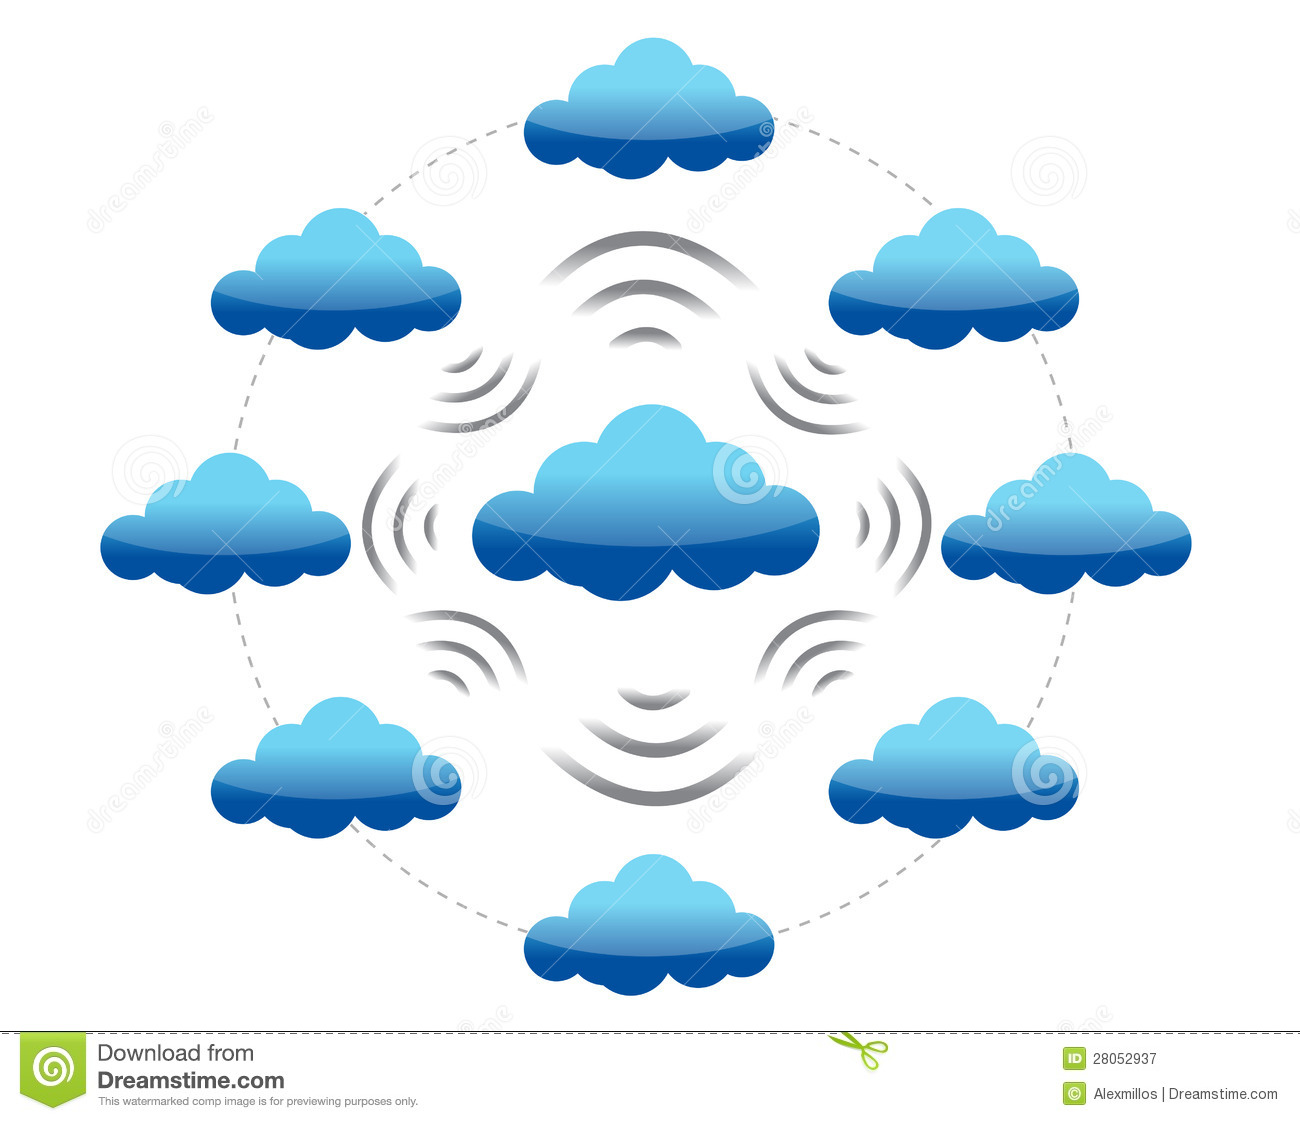 Networking Cloud Computing: Cloud Computing Network Royalty Free Stock Photography